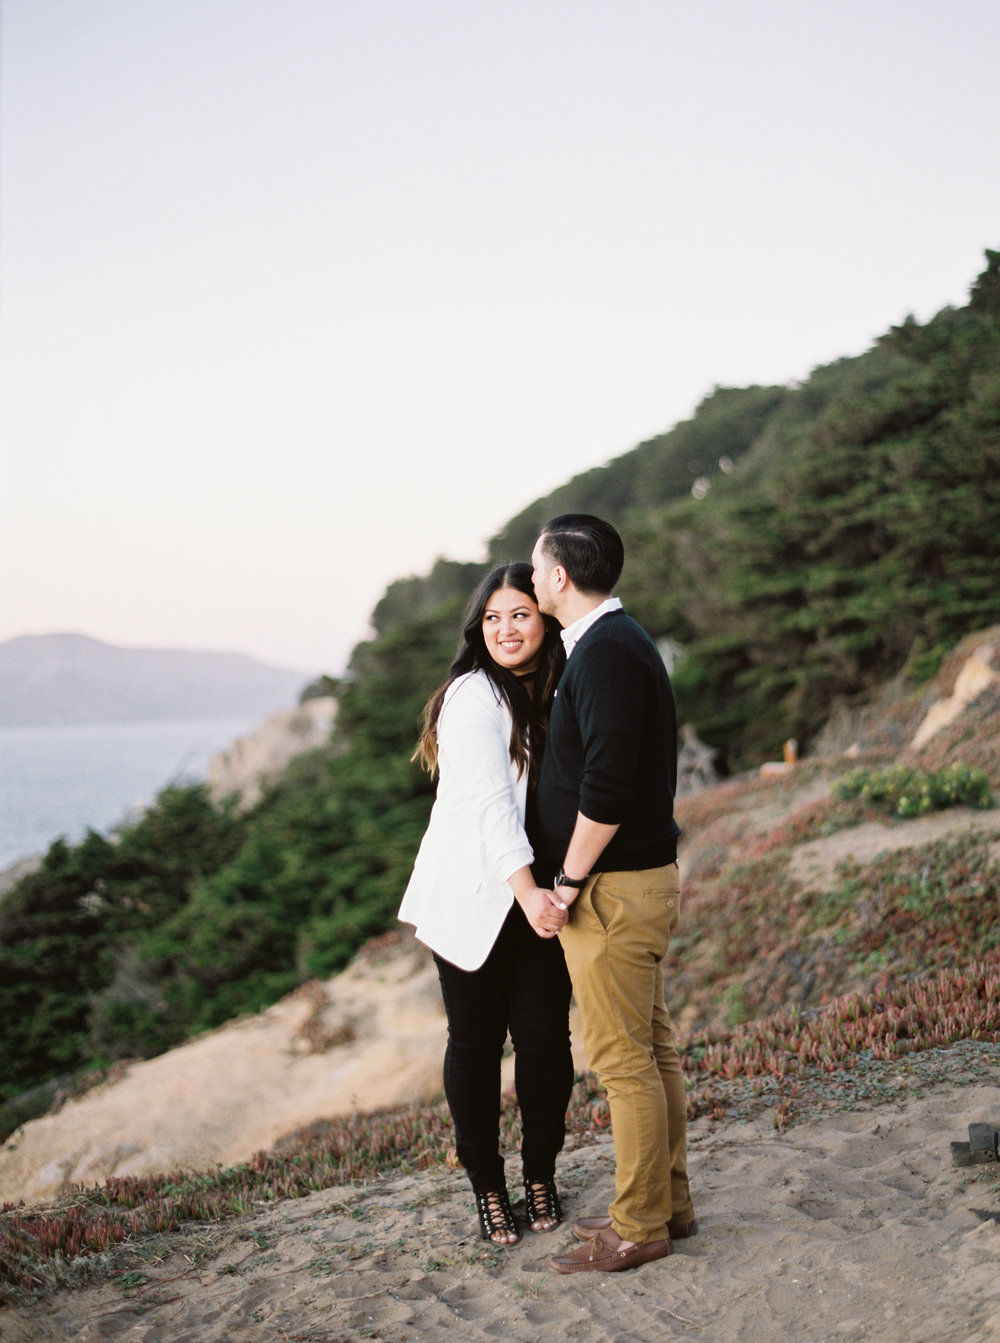 sutro-baths-san-francisco-engagement-16-2.jpg